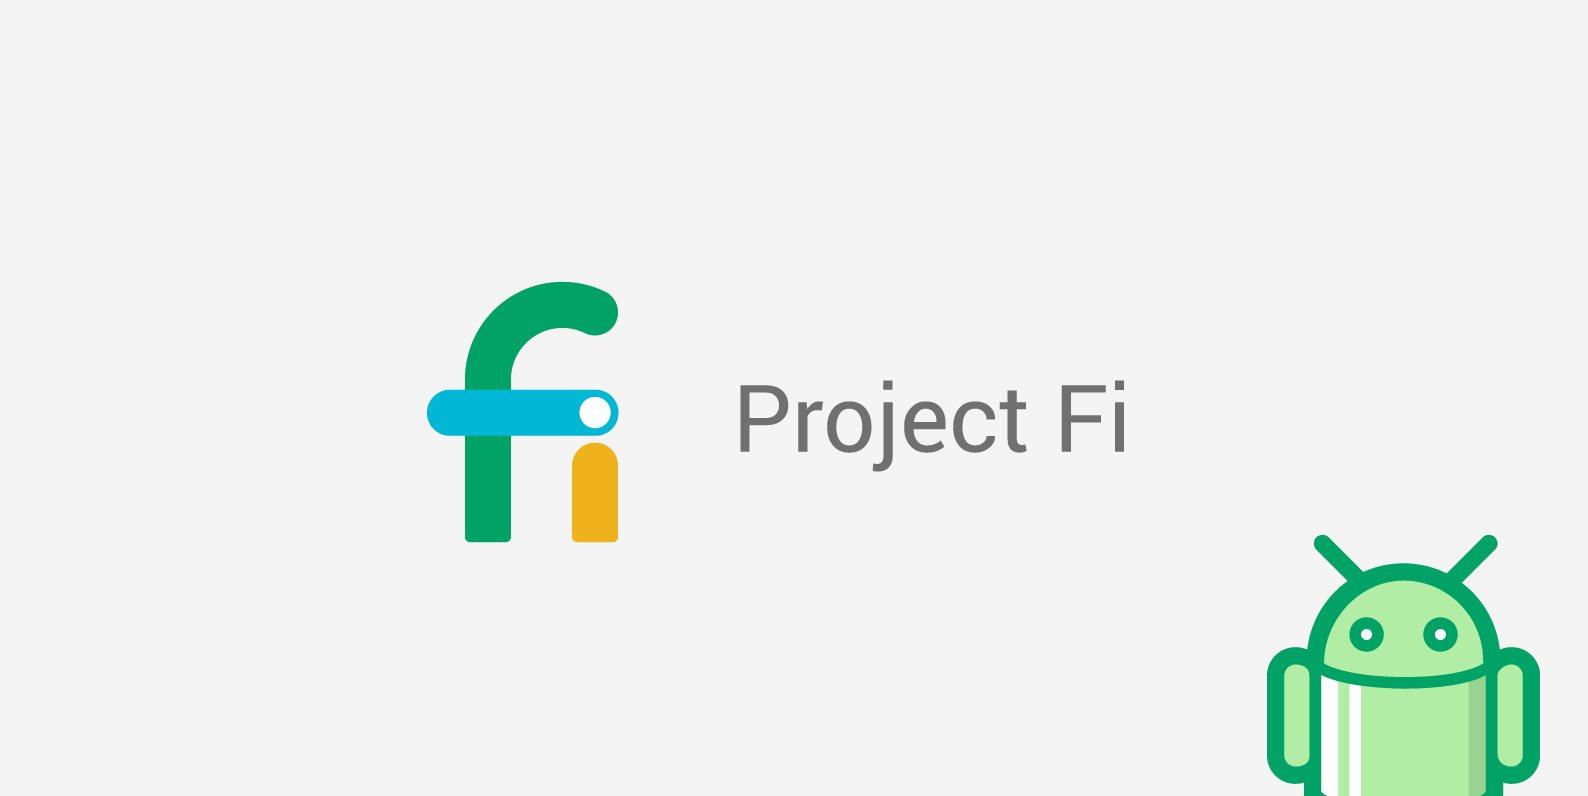 Five things you should know about Google's Project Fi Wireless Service